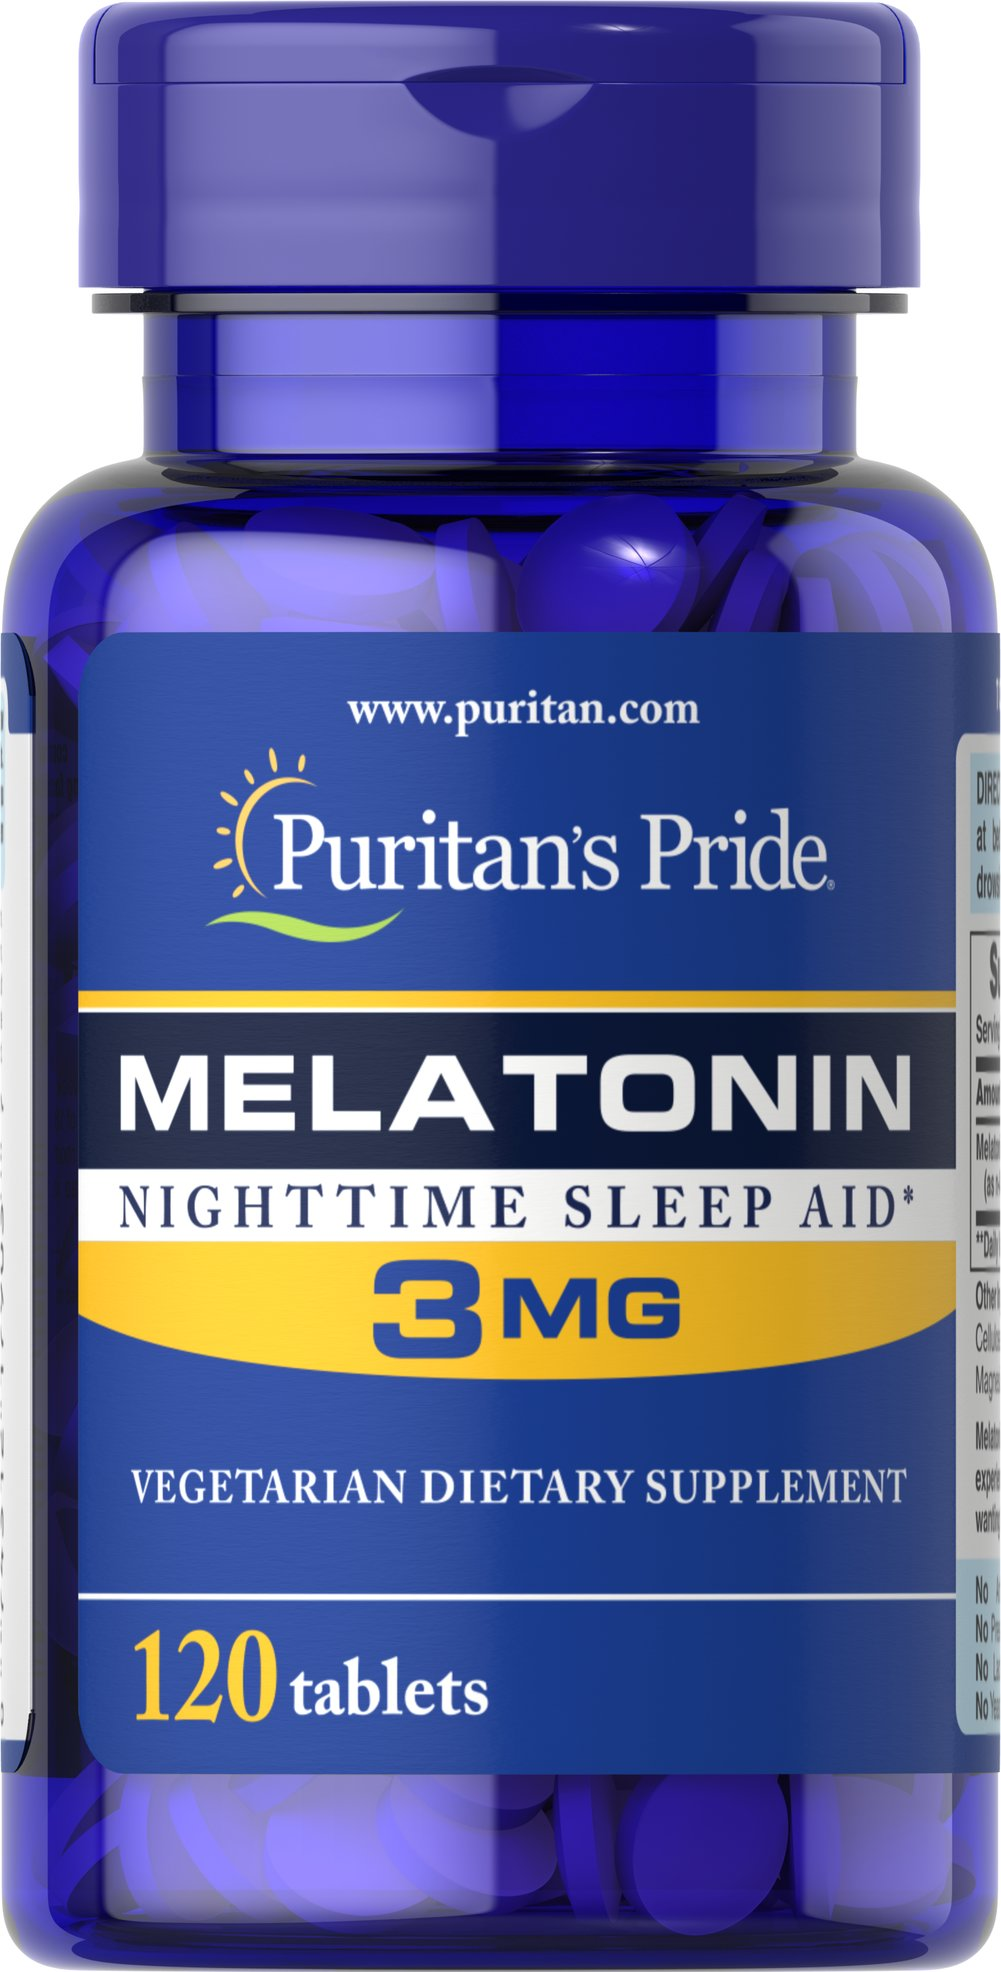 Melatonin 3 mg <p>Sometimes it's hard to unwind after a long day. That's when it's time for Melatonin, a hormone naturally produced in the body that is closely involved in the natural sleep cycle.** It's a terrific choice if you experience occasional sleeplessness or jet lag, or if you want to improve your quality of rest.**  Melatonin helps you fall asleep quickly and stay asleep longer**<br /></p> 120 Tablets 3 mg $6.99